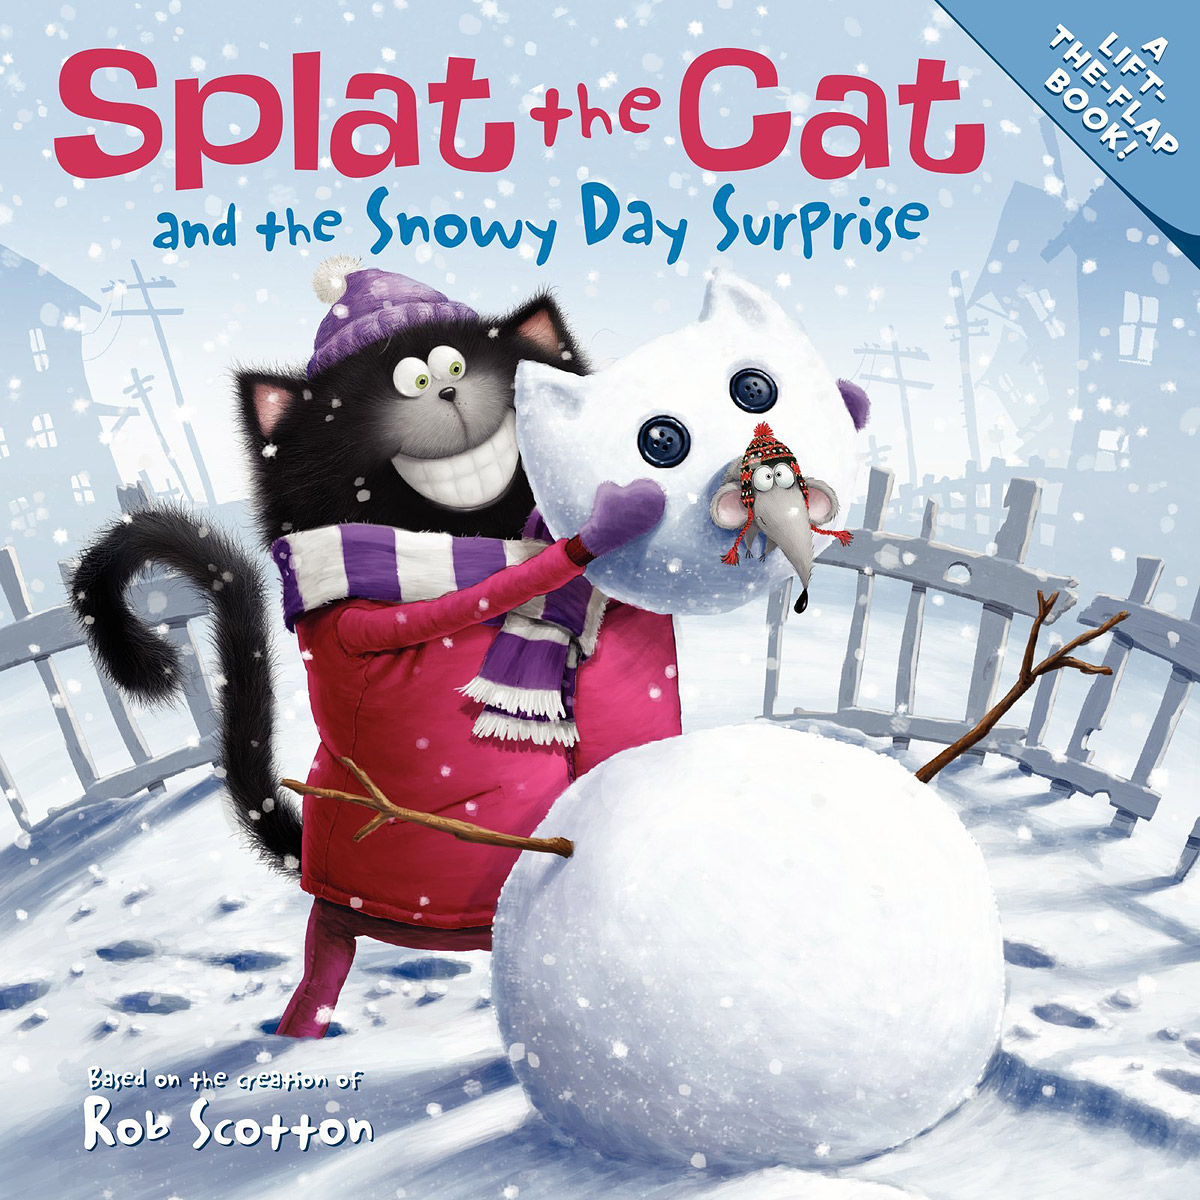 Splat the Cat and the Snowy Day Surprise seeing things as they are